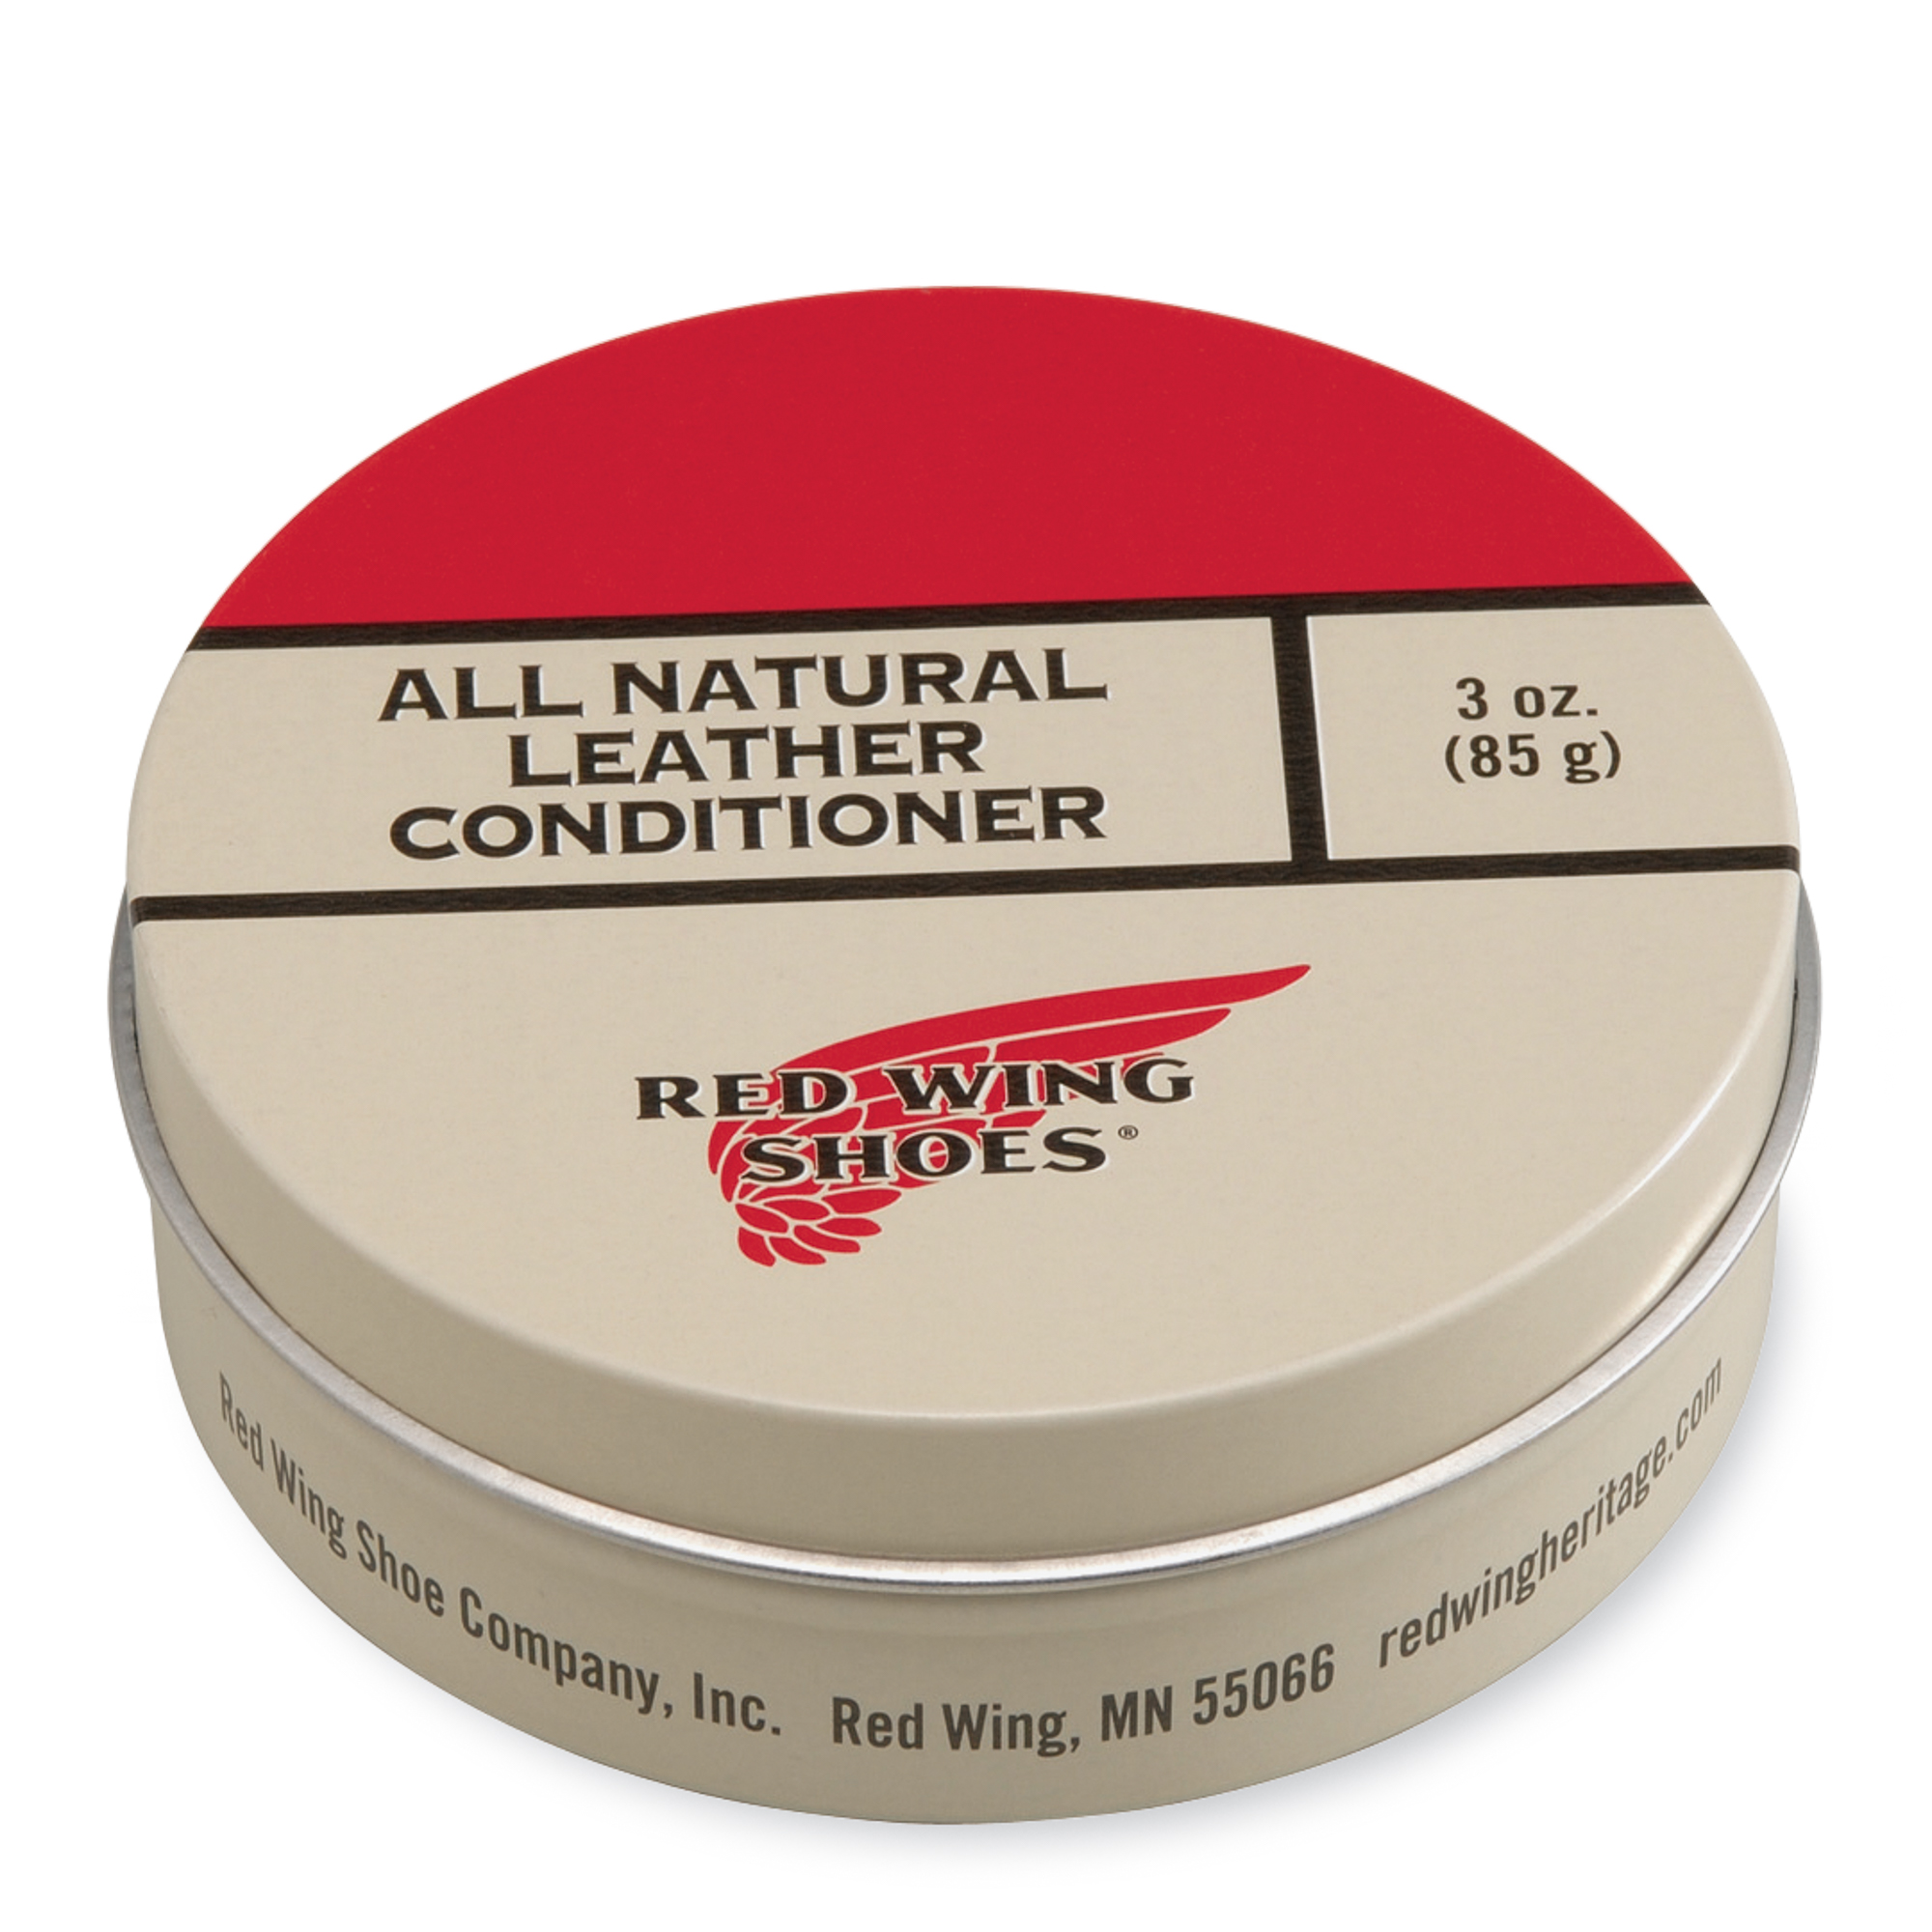 Red Wing - ALL NATURAL LEATHER CONDITIONER